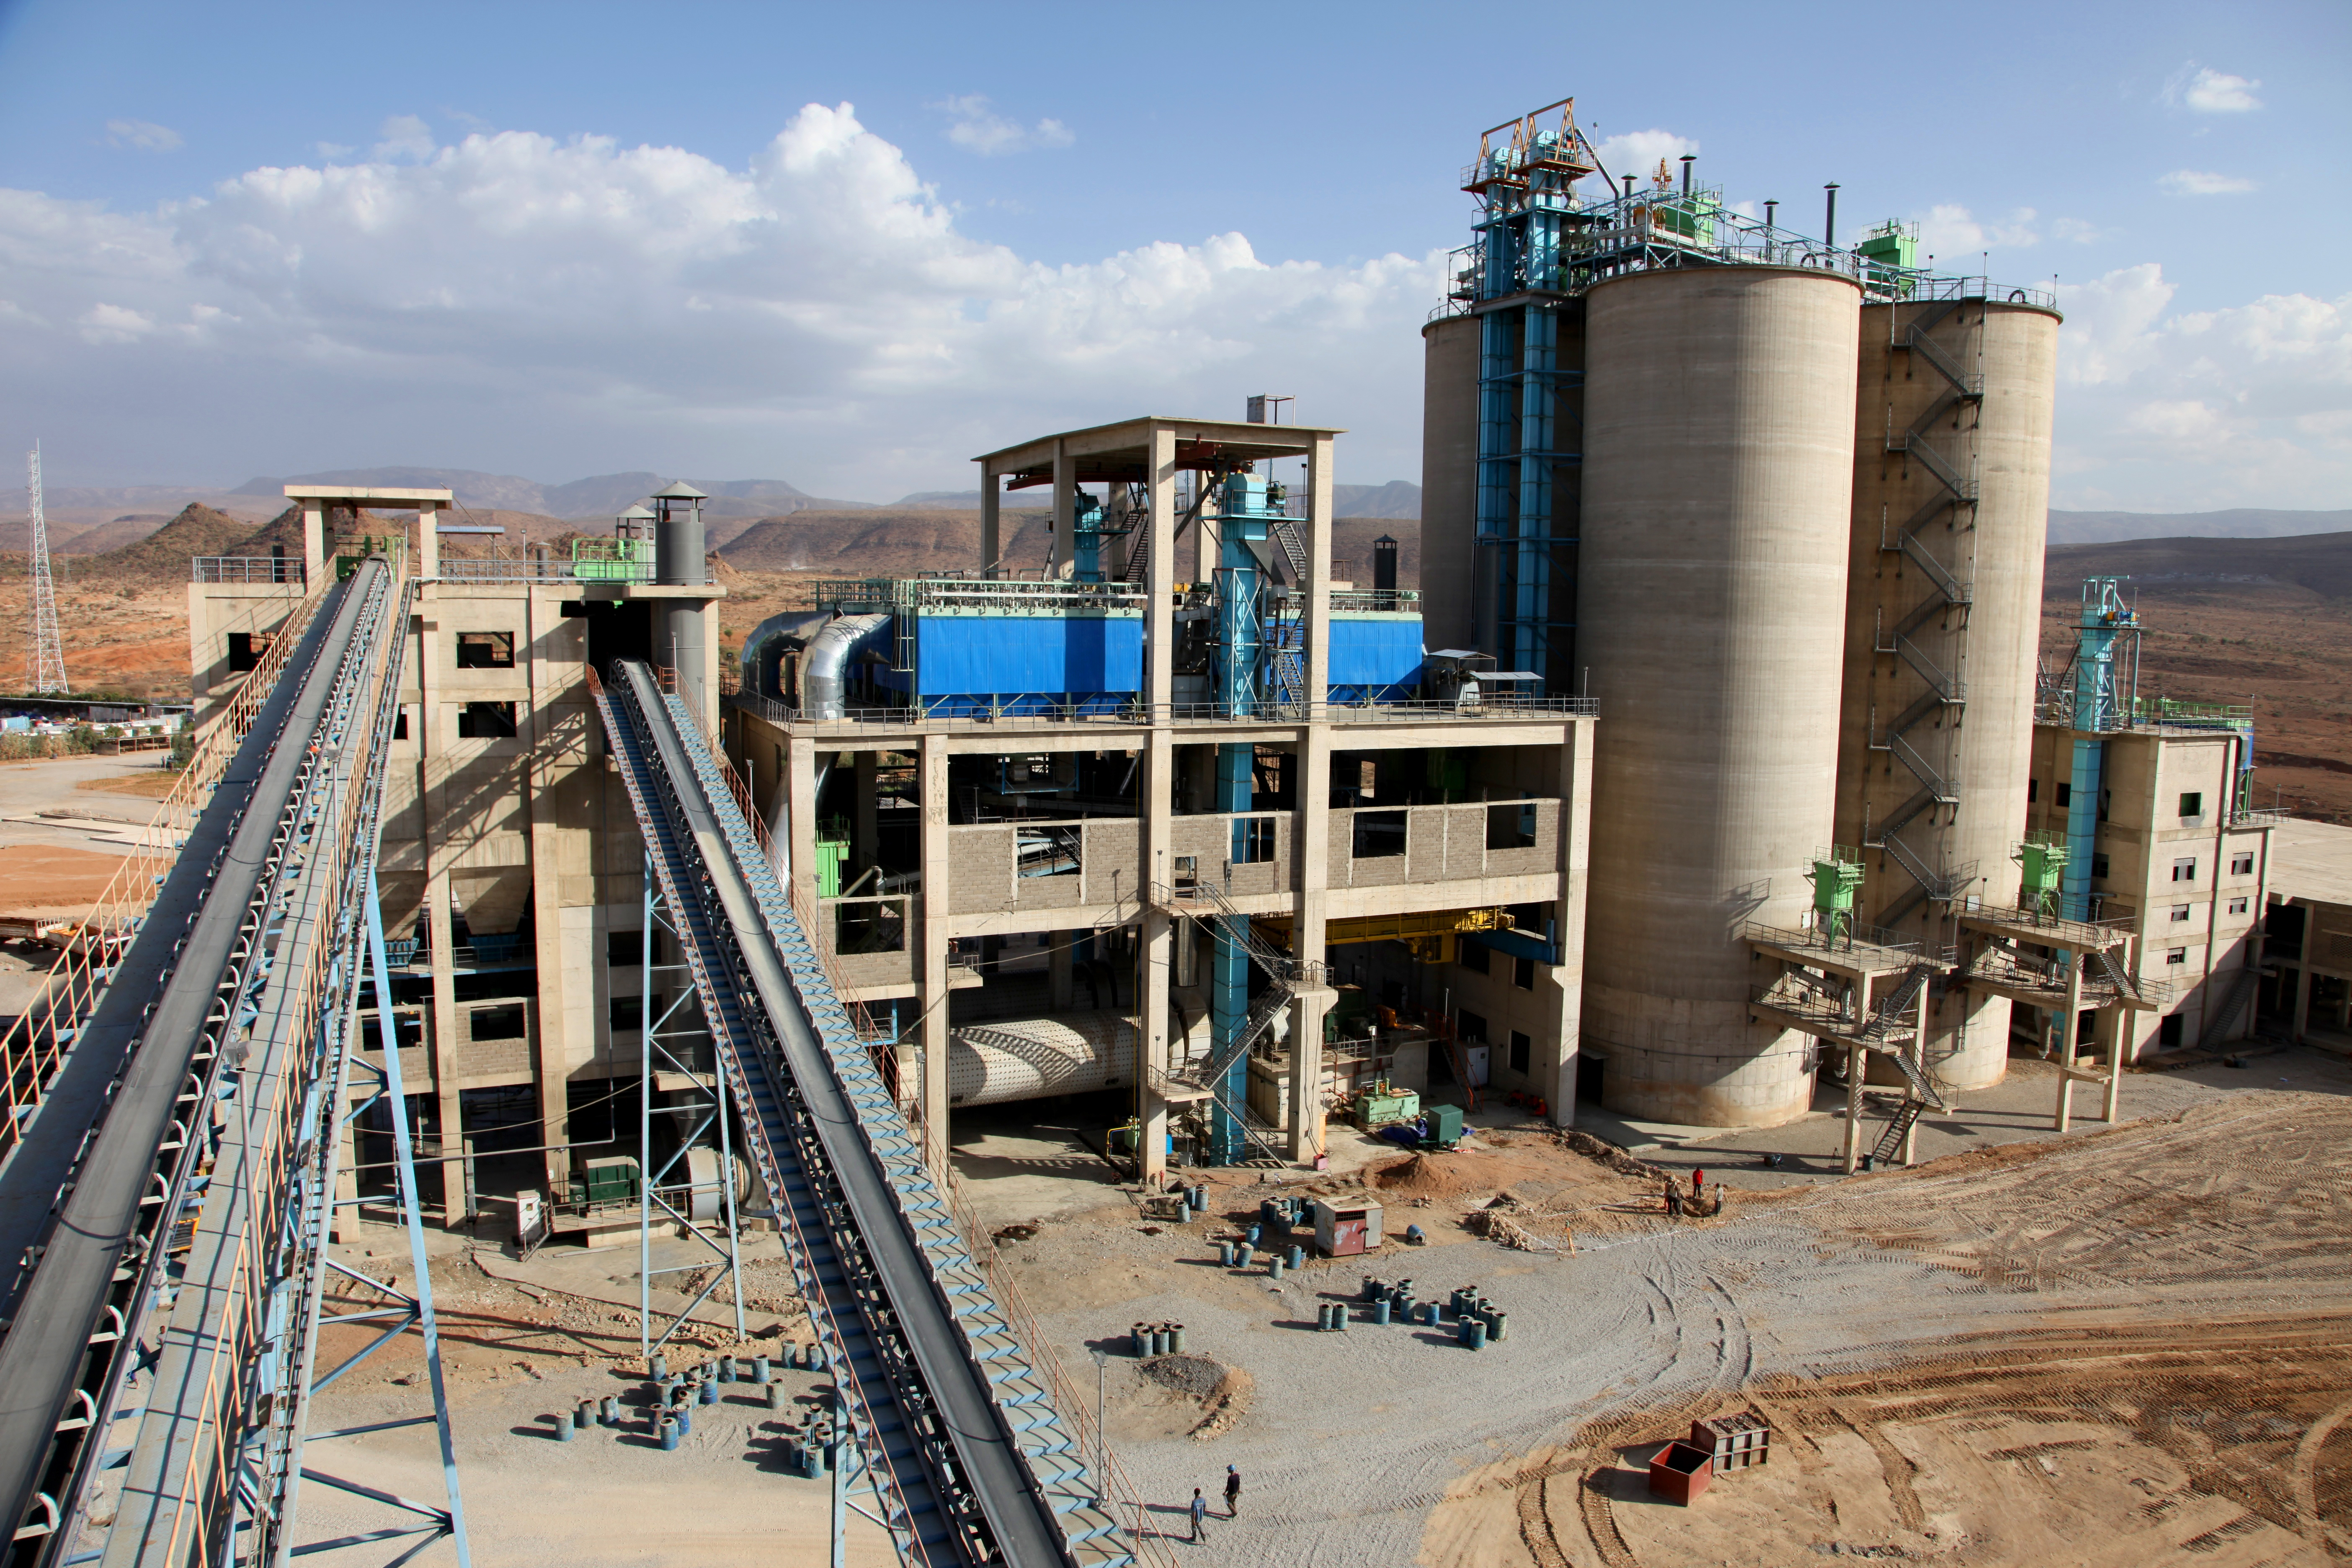 File:Factory of National Cement Share Company jpg - Wikimedia Commons